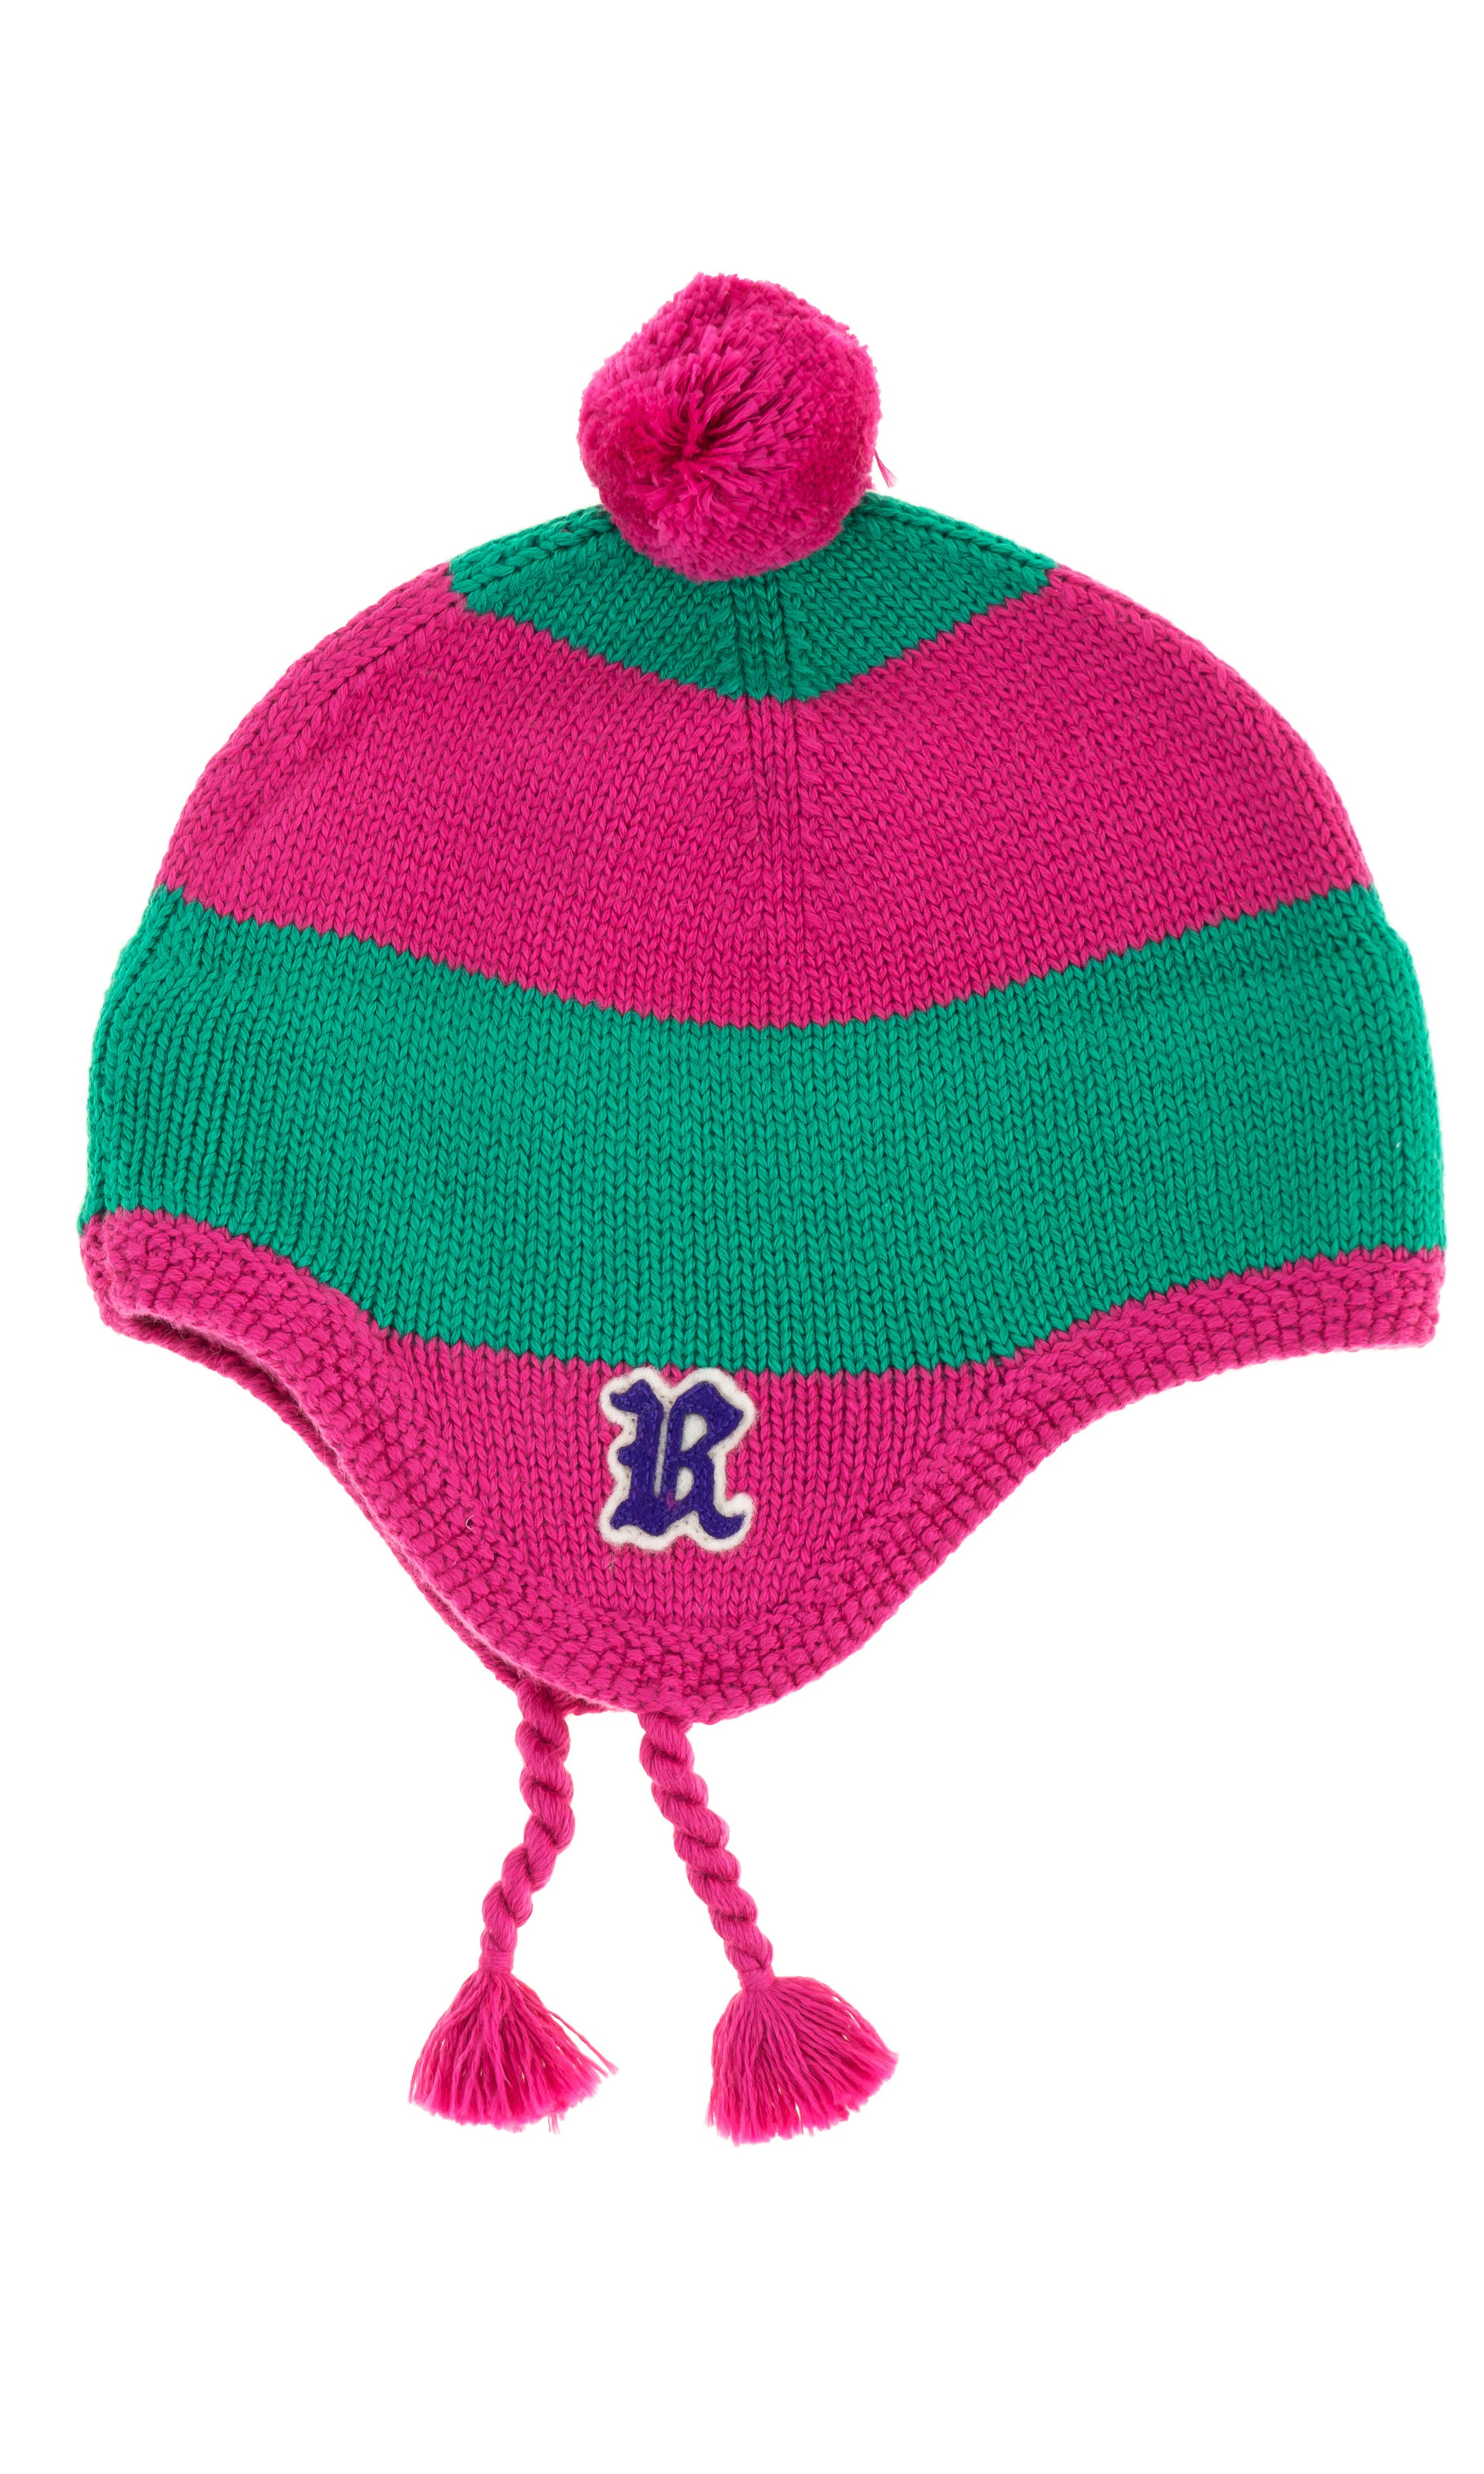 And Green Celebrity Club Lauren CapPolo Girl Pink Ralph sQhrtd